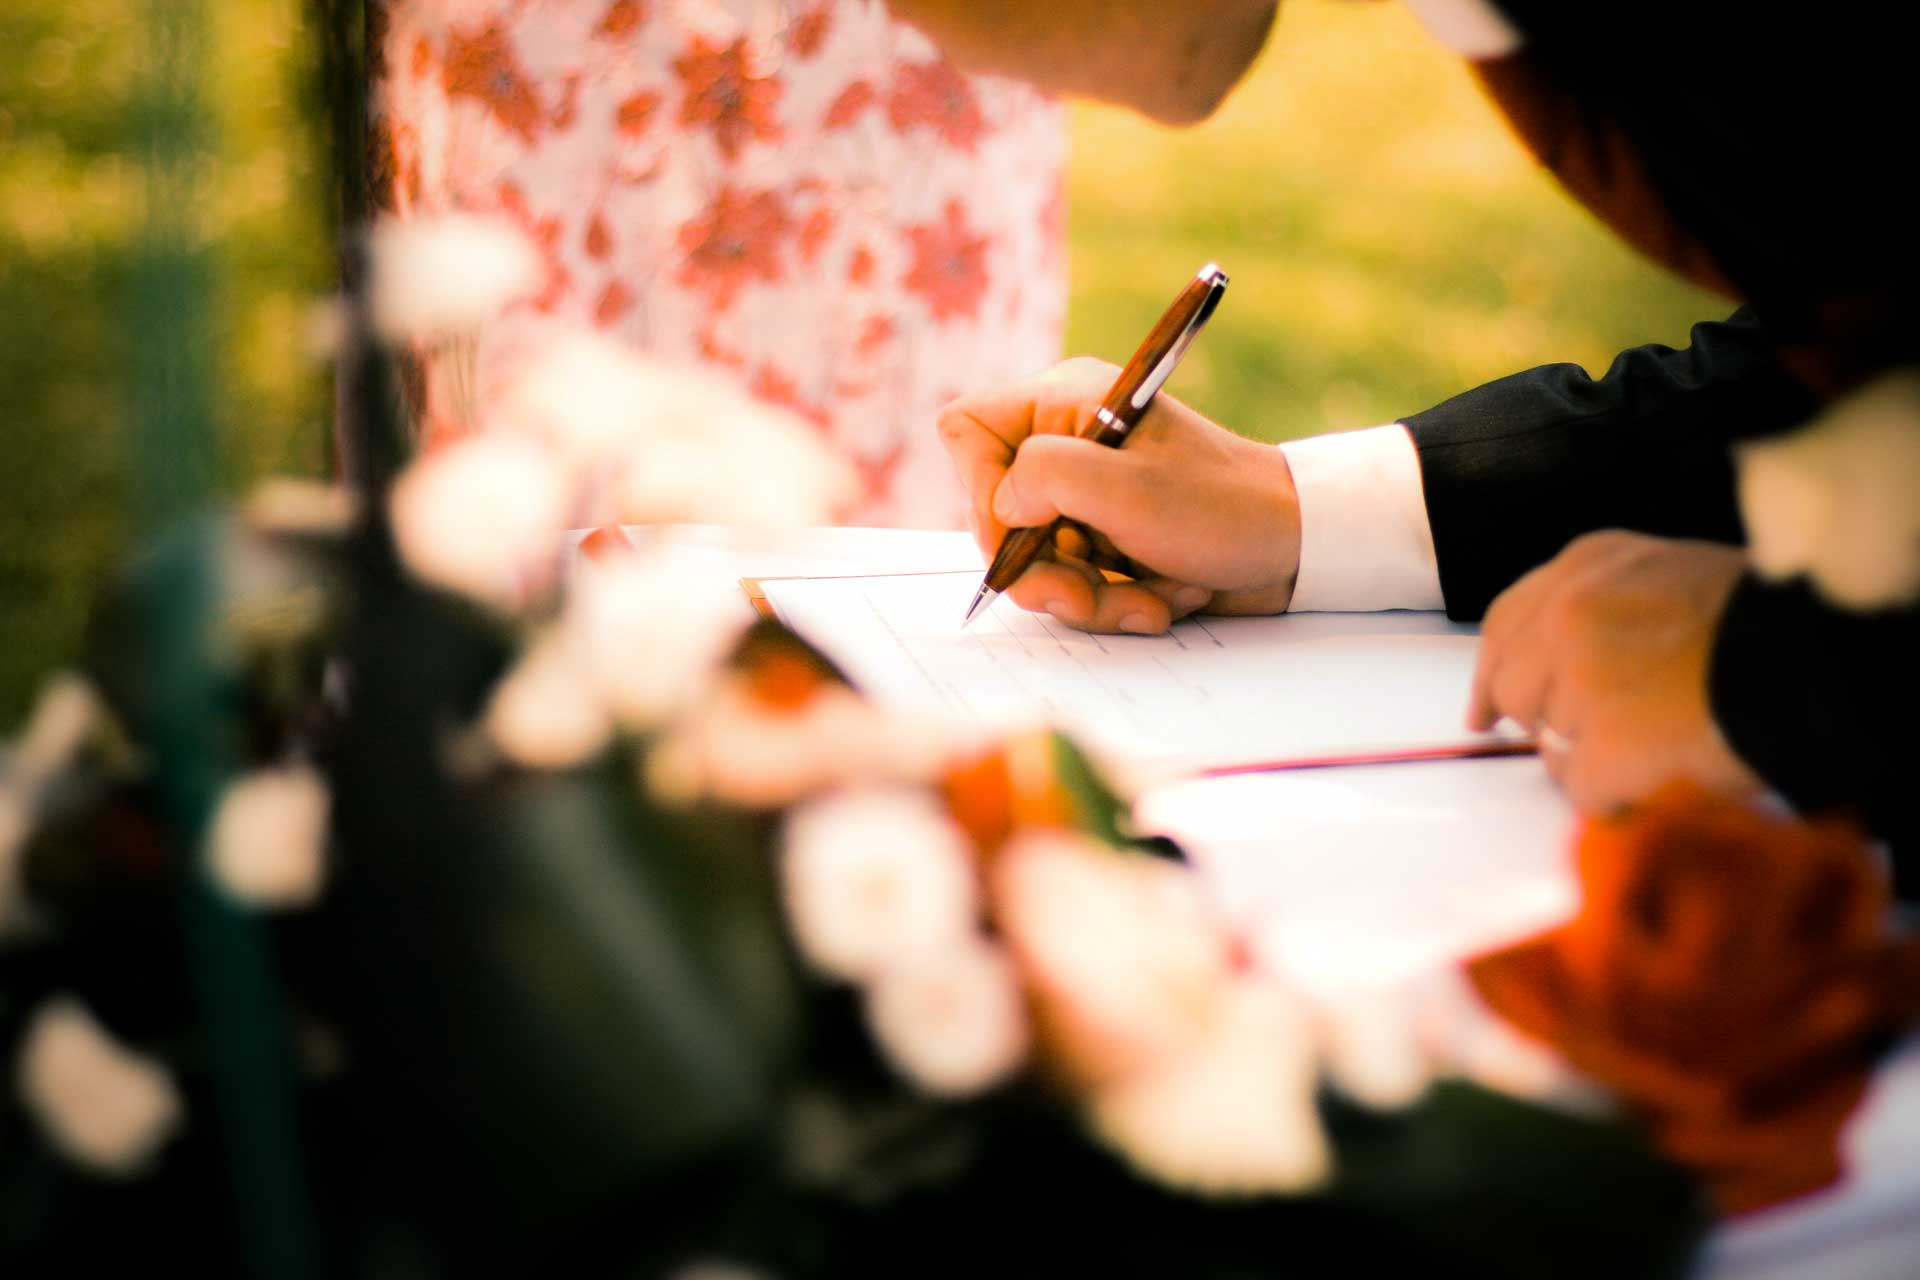 Signing a Will at a distance